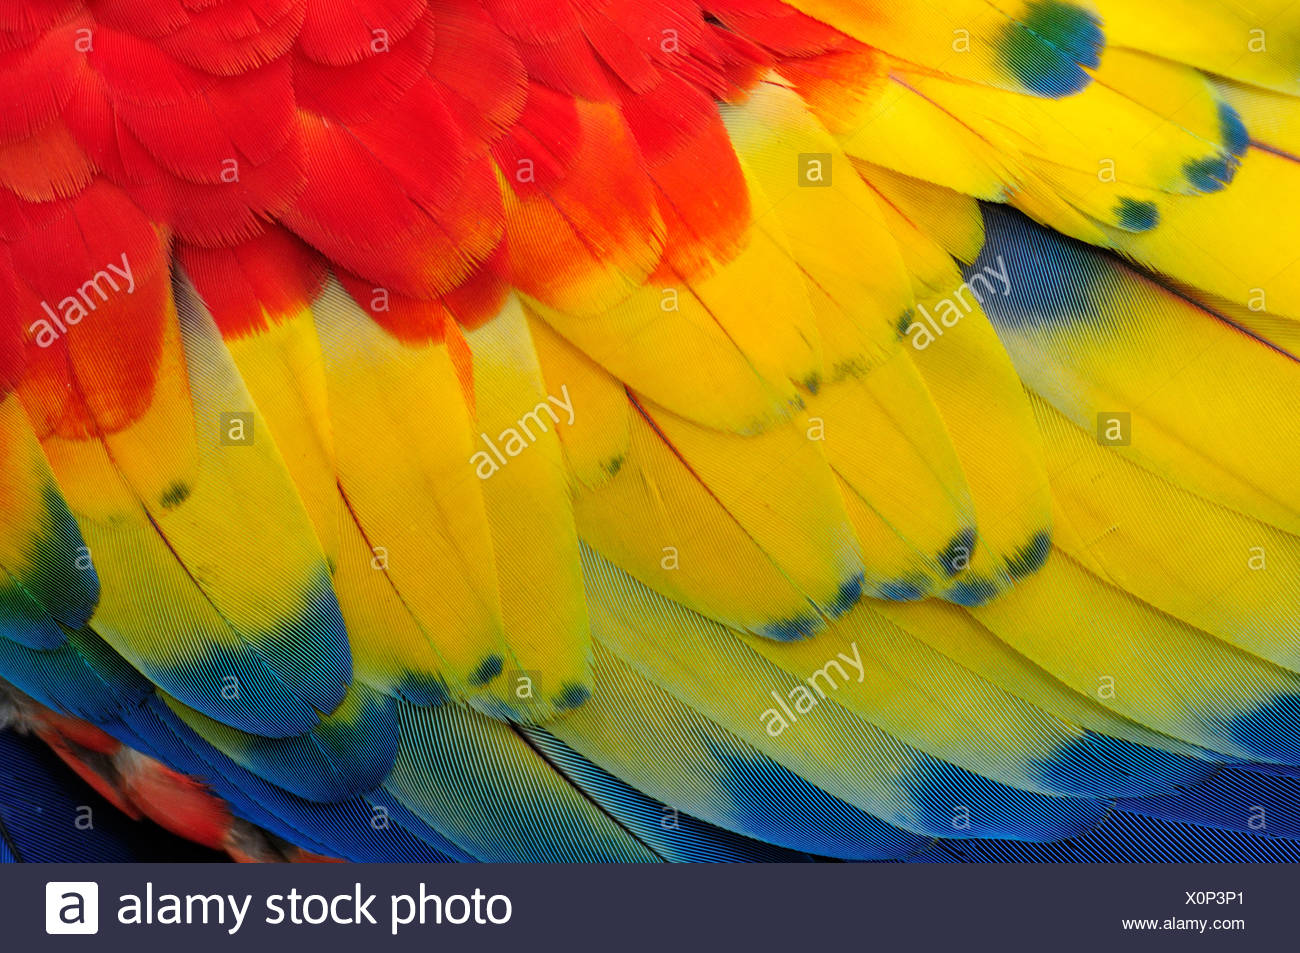 Macaw, parrots, Central America, Honduras, feathers, colours, concepts, - Stock Image